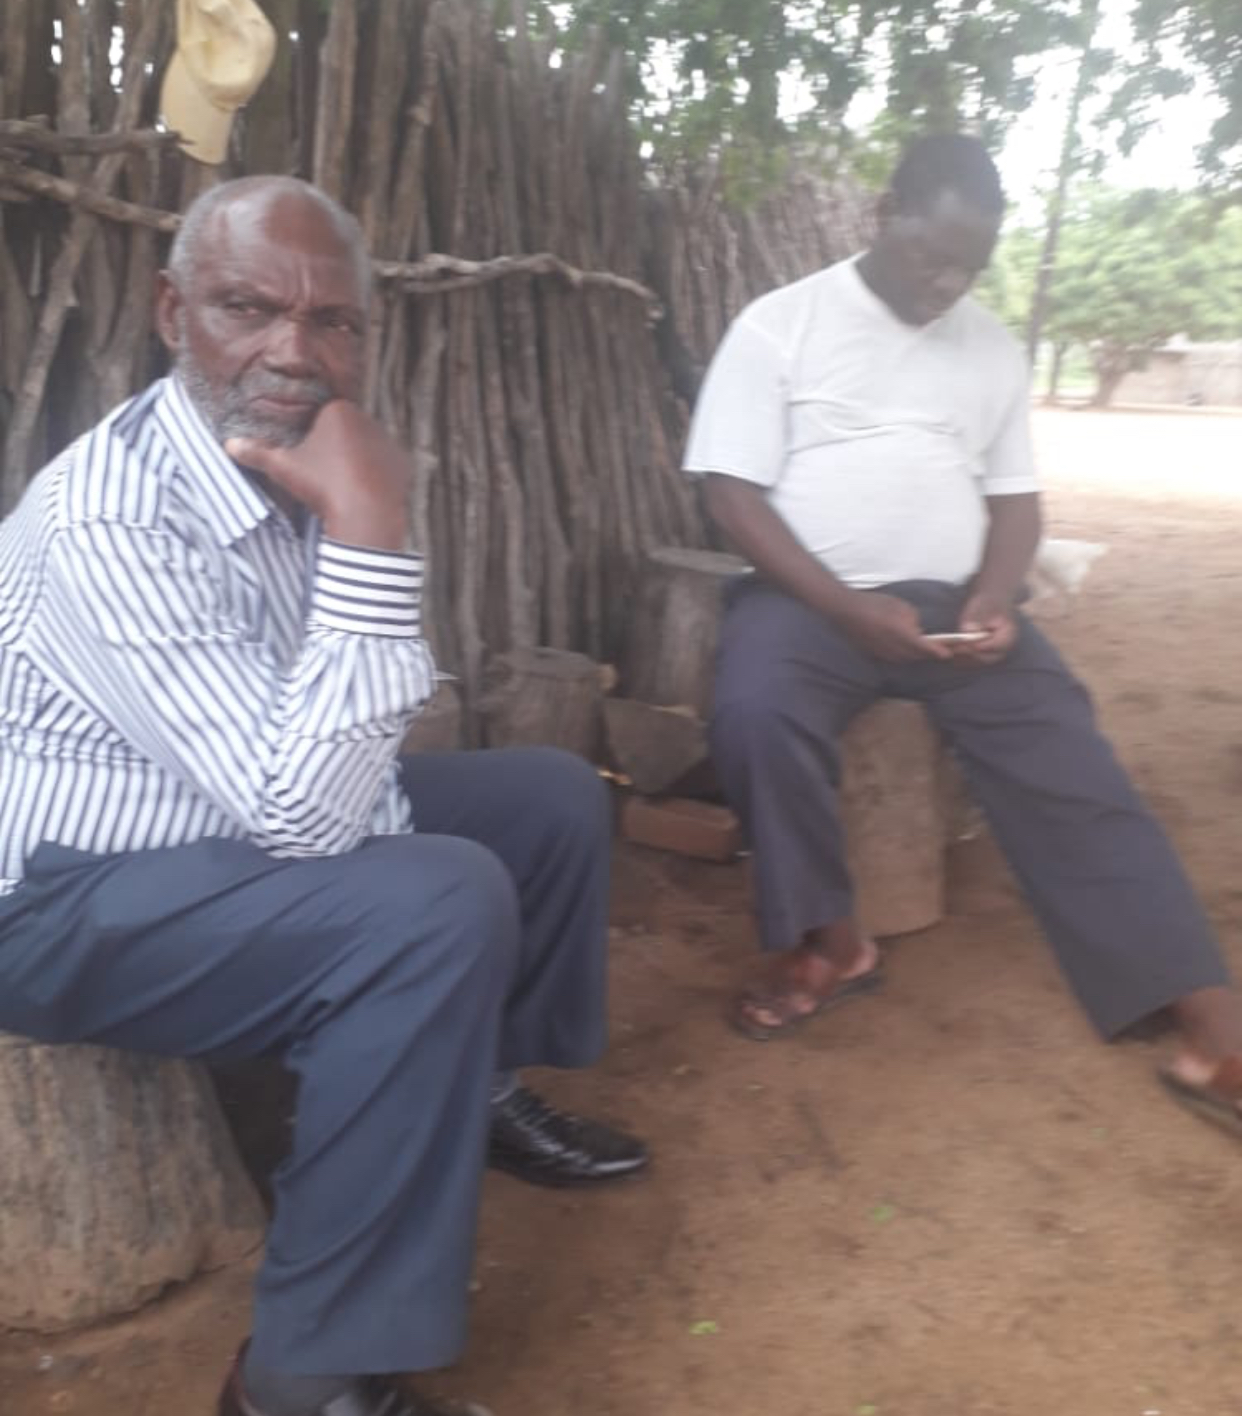 Malindza senior Royal Kraal member: Evictions must stop, residents legally acquired land from Umphakatsi